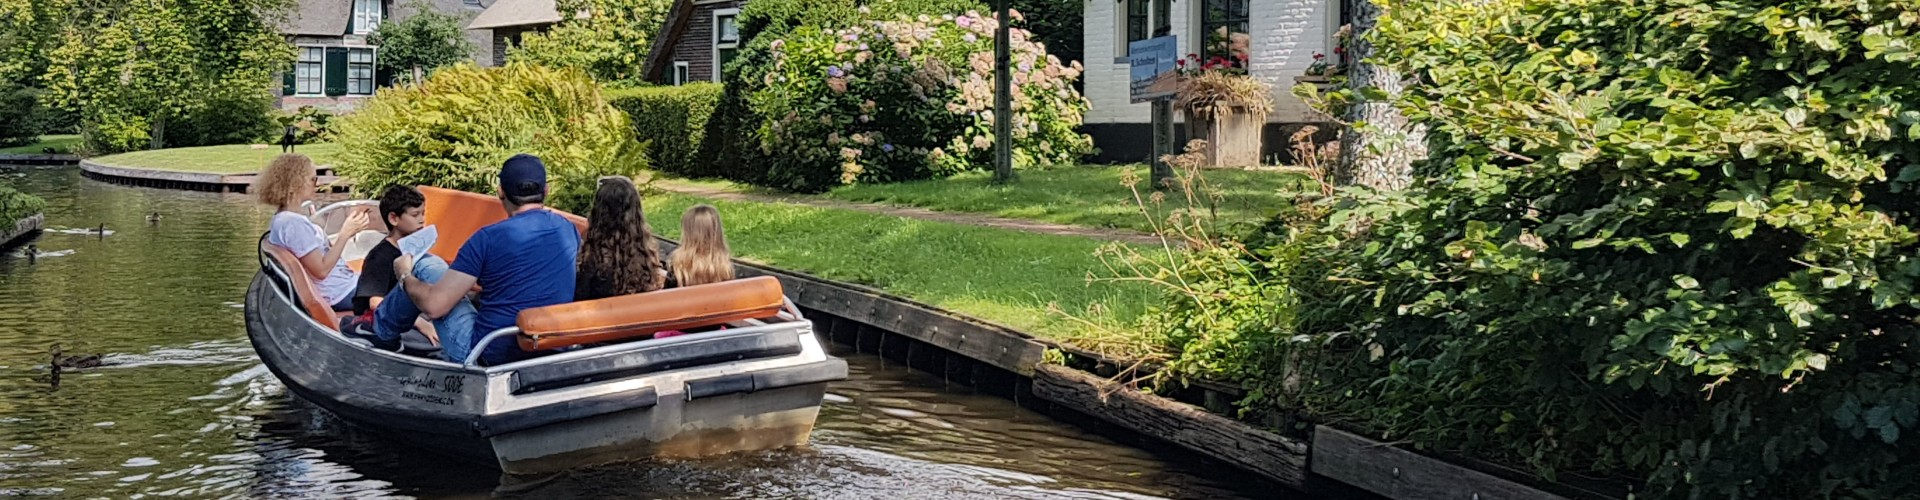 Boat ride in Giethoorn canal